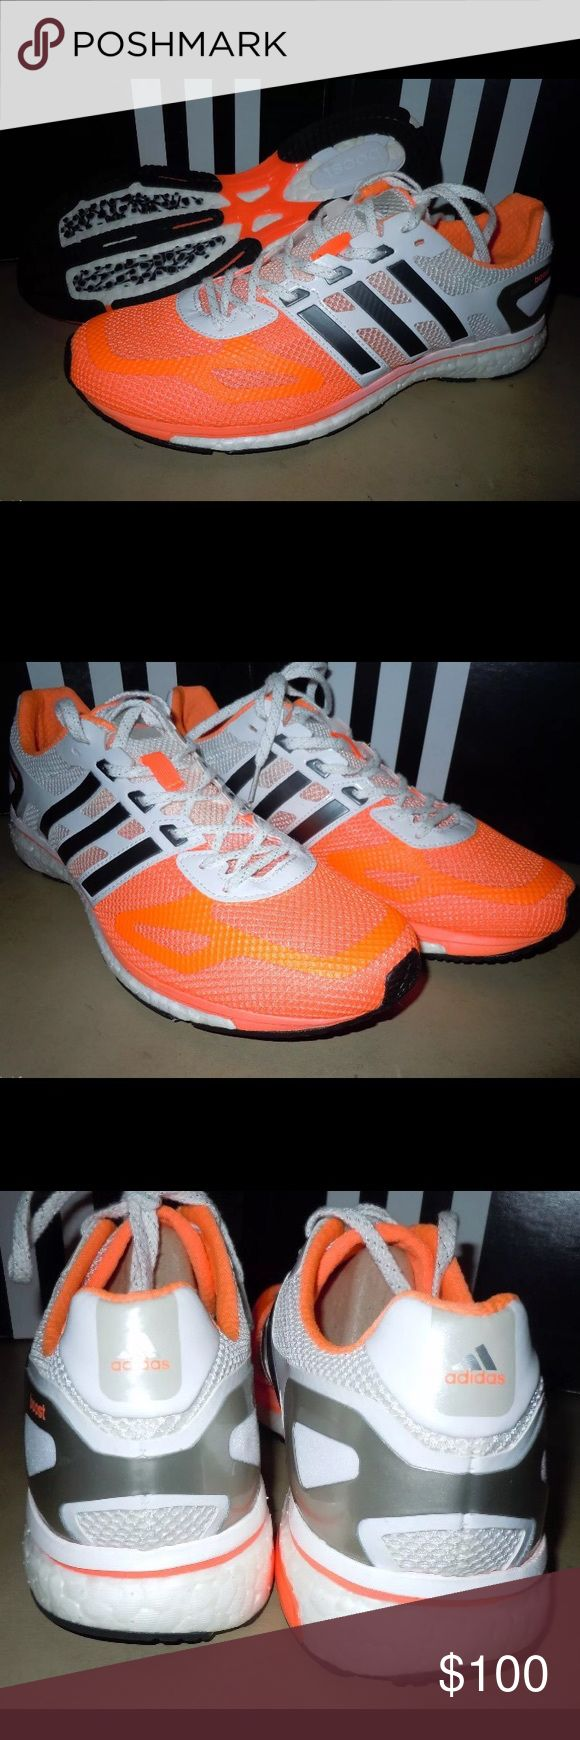 Adidas Adios Boost Shoes Orange White Gray Orange/white/gray women's Adidas Adios Boost in size 9.5. This style runs small and these fit like a 9. These are in excellent condition and were only worn once. ❌Trades/holds❌ I ship within 72 hours of your order. I accept REASONABLE offers. Poshmark rules only. Thank you for 👀! 🚭🐩 Adidas Shoes Sneakers